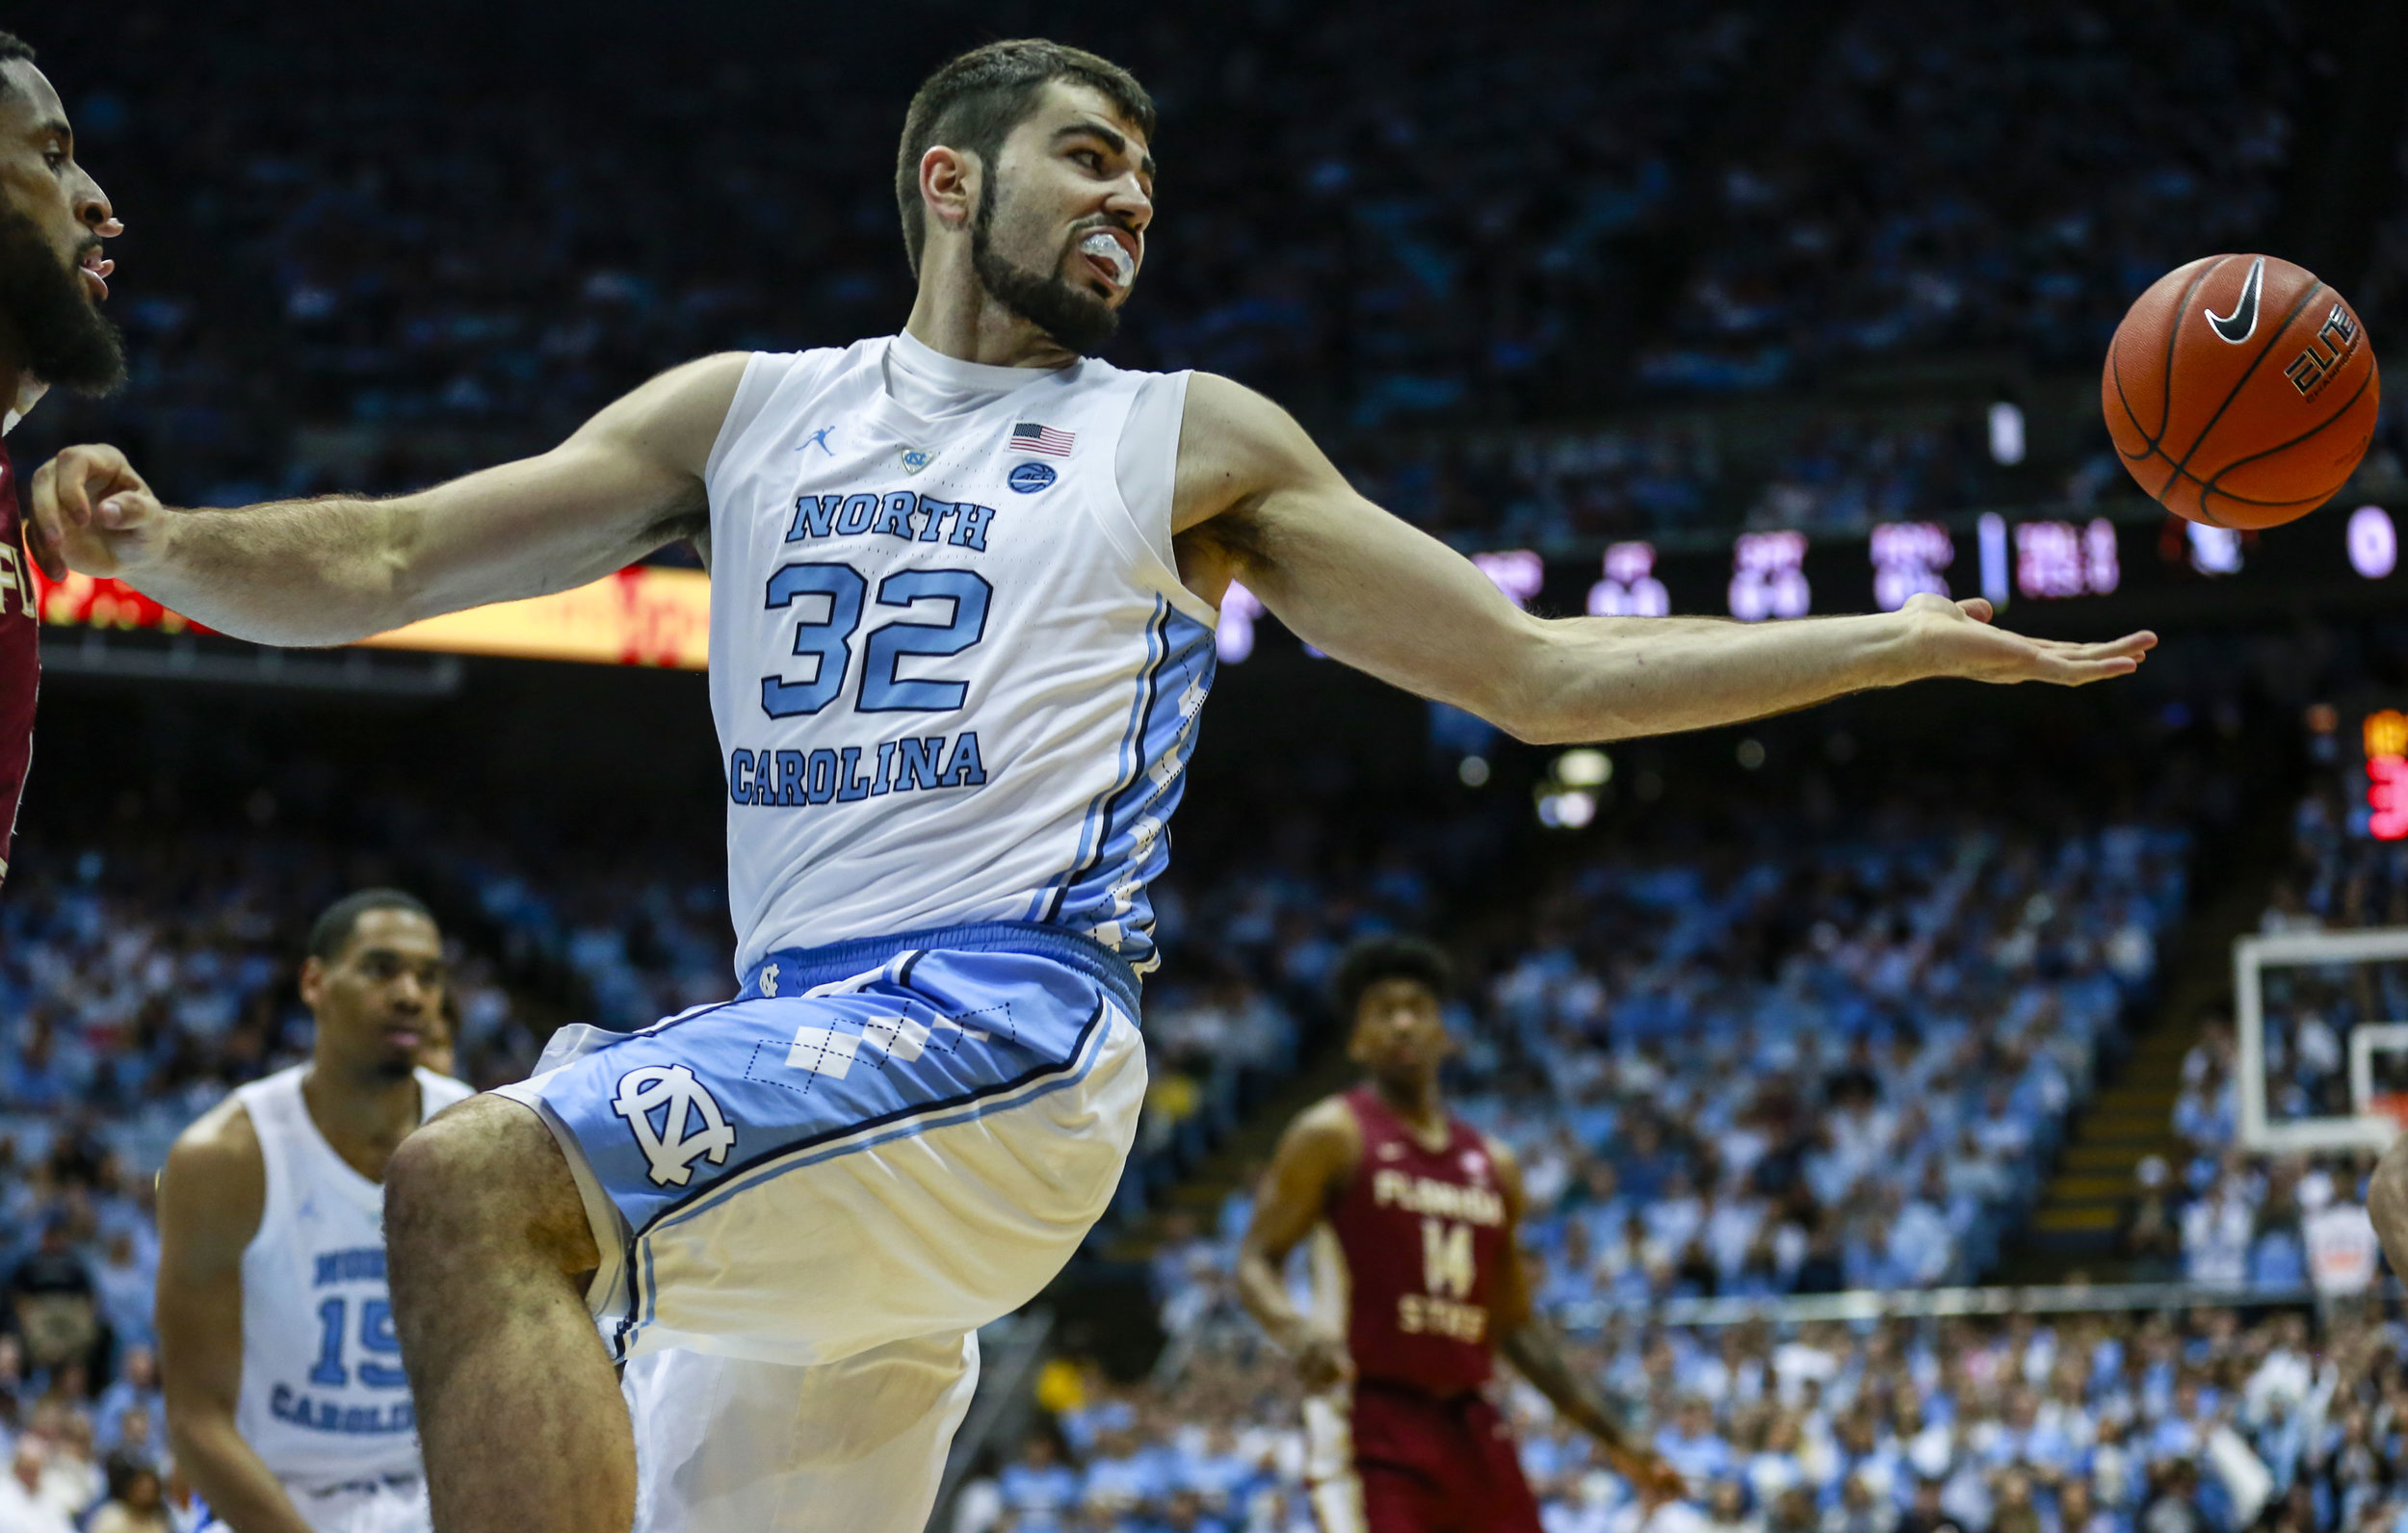 Luke Maye fights to secure a rebound during UNC's win over FSU. The senior forward finished the afternoon with 13 points and 11 rebounds, his 11th double-double of the season. | Photo by Alex Kormann